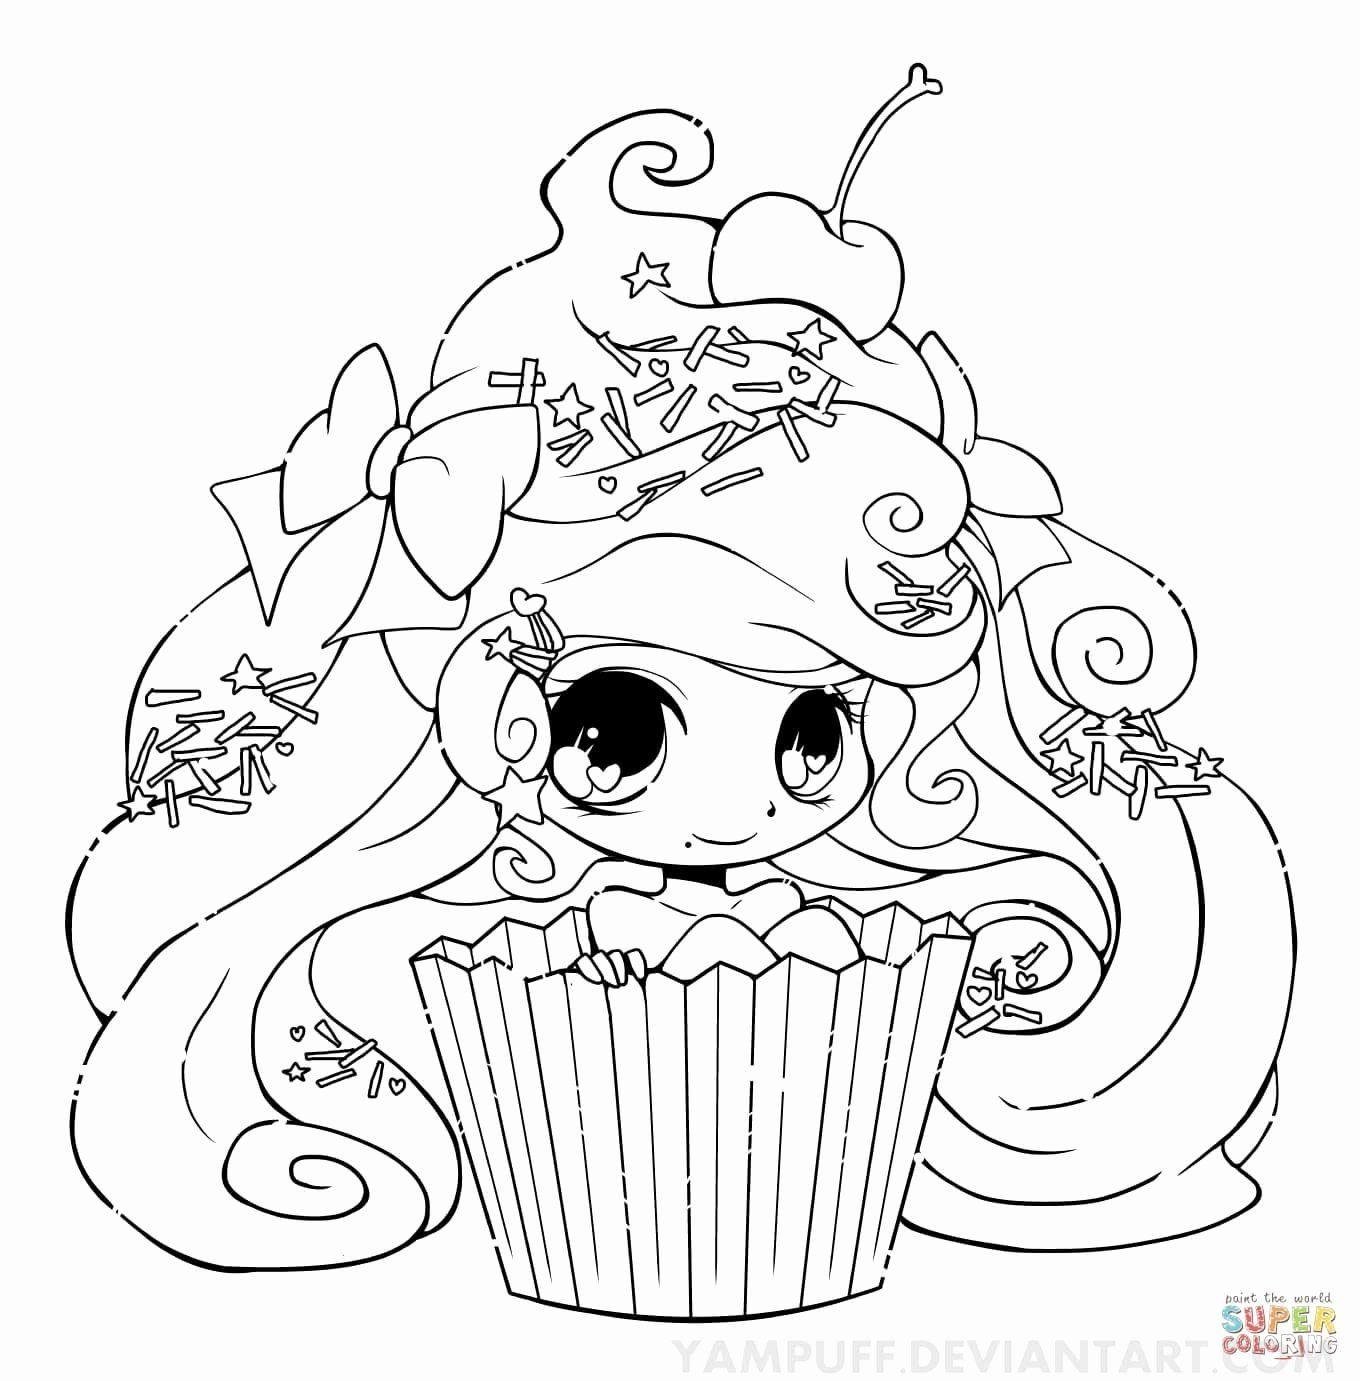 Anime Animals Coloring Pages Lovely Chibi Cupcake Girl Coloring Page From Anime Girls Category In 2020 Chibi Coloring Pages Cute Coloring Pages Cupcake Coloring Pages